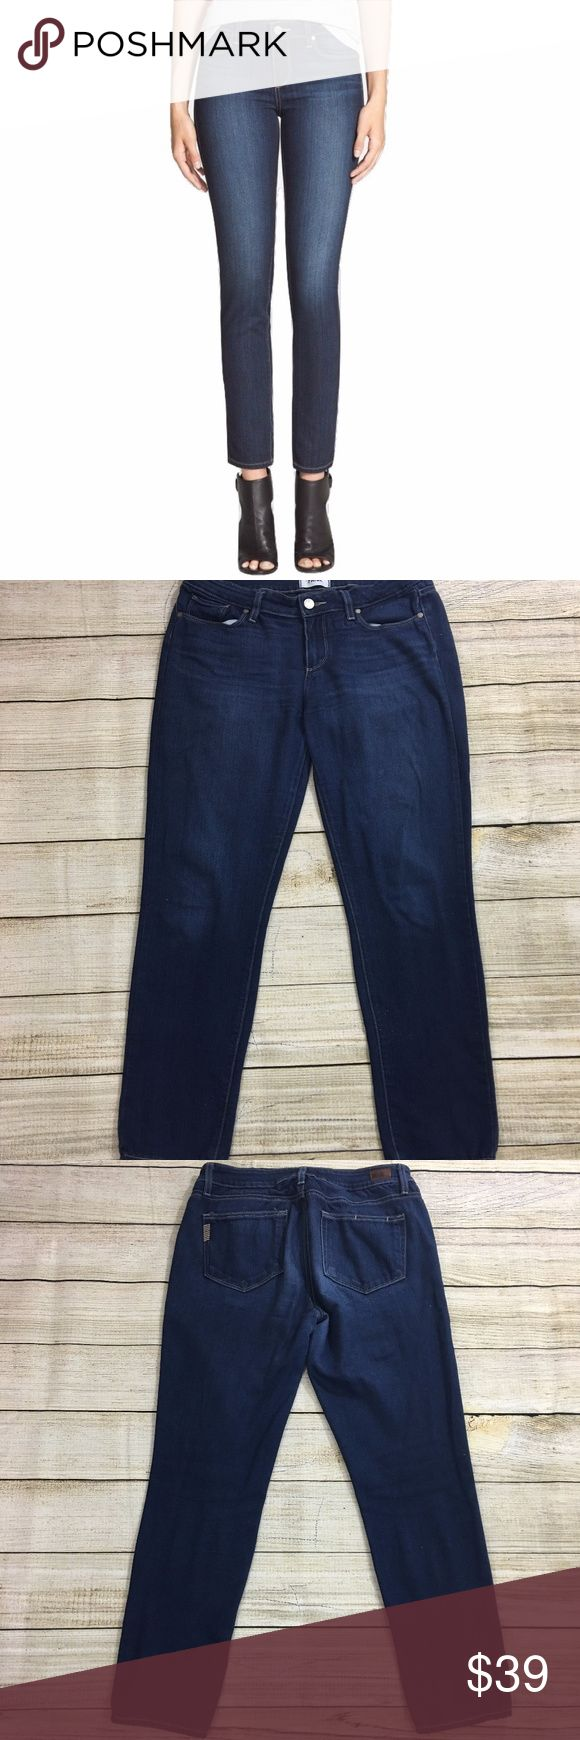 PAIGE Skyline Ankle Peg Jeans Inseam: 28 inches Lay Flat Waist: 15 inches Lay Flat Leg Opening:  6 inches Rise: 8.5 inches Material: 50% rayon, 28% cotton, 21% polyester, 1% spandex Description: excellent condition  Bundle & Save: 10% off or more  NO TRADES Shipping within 24 hours PAIGE Jeans Skinny